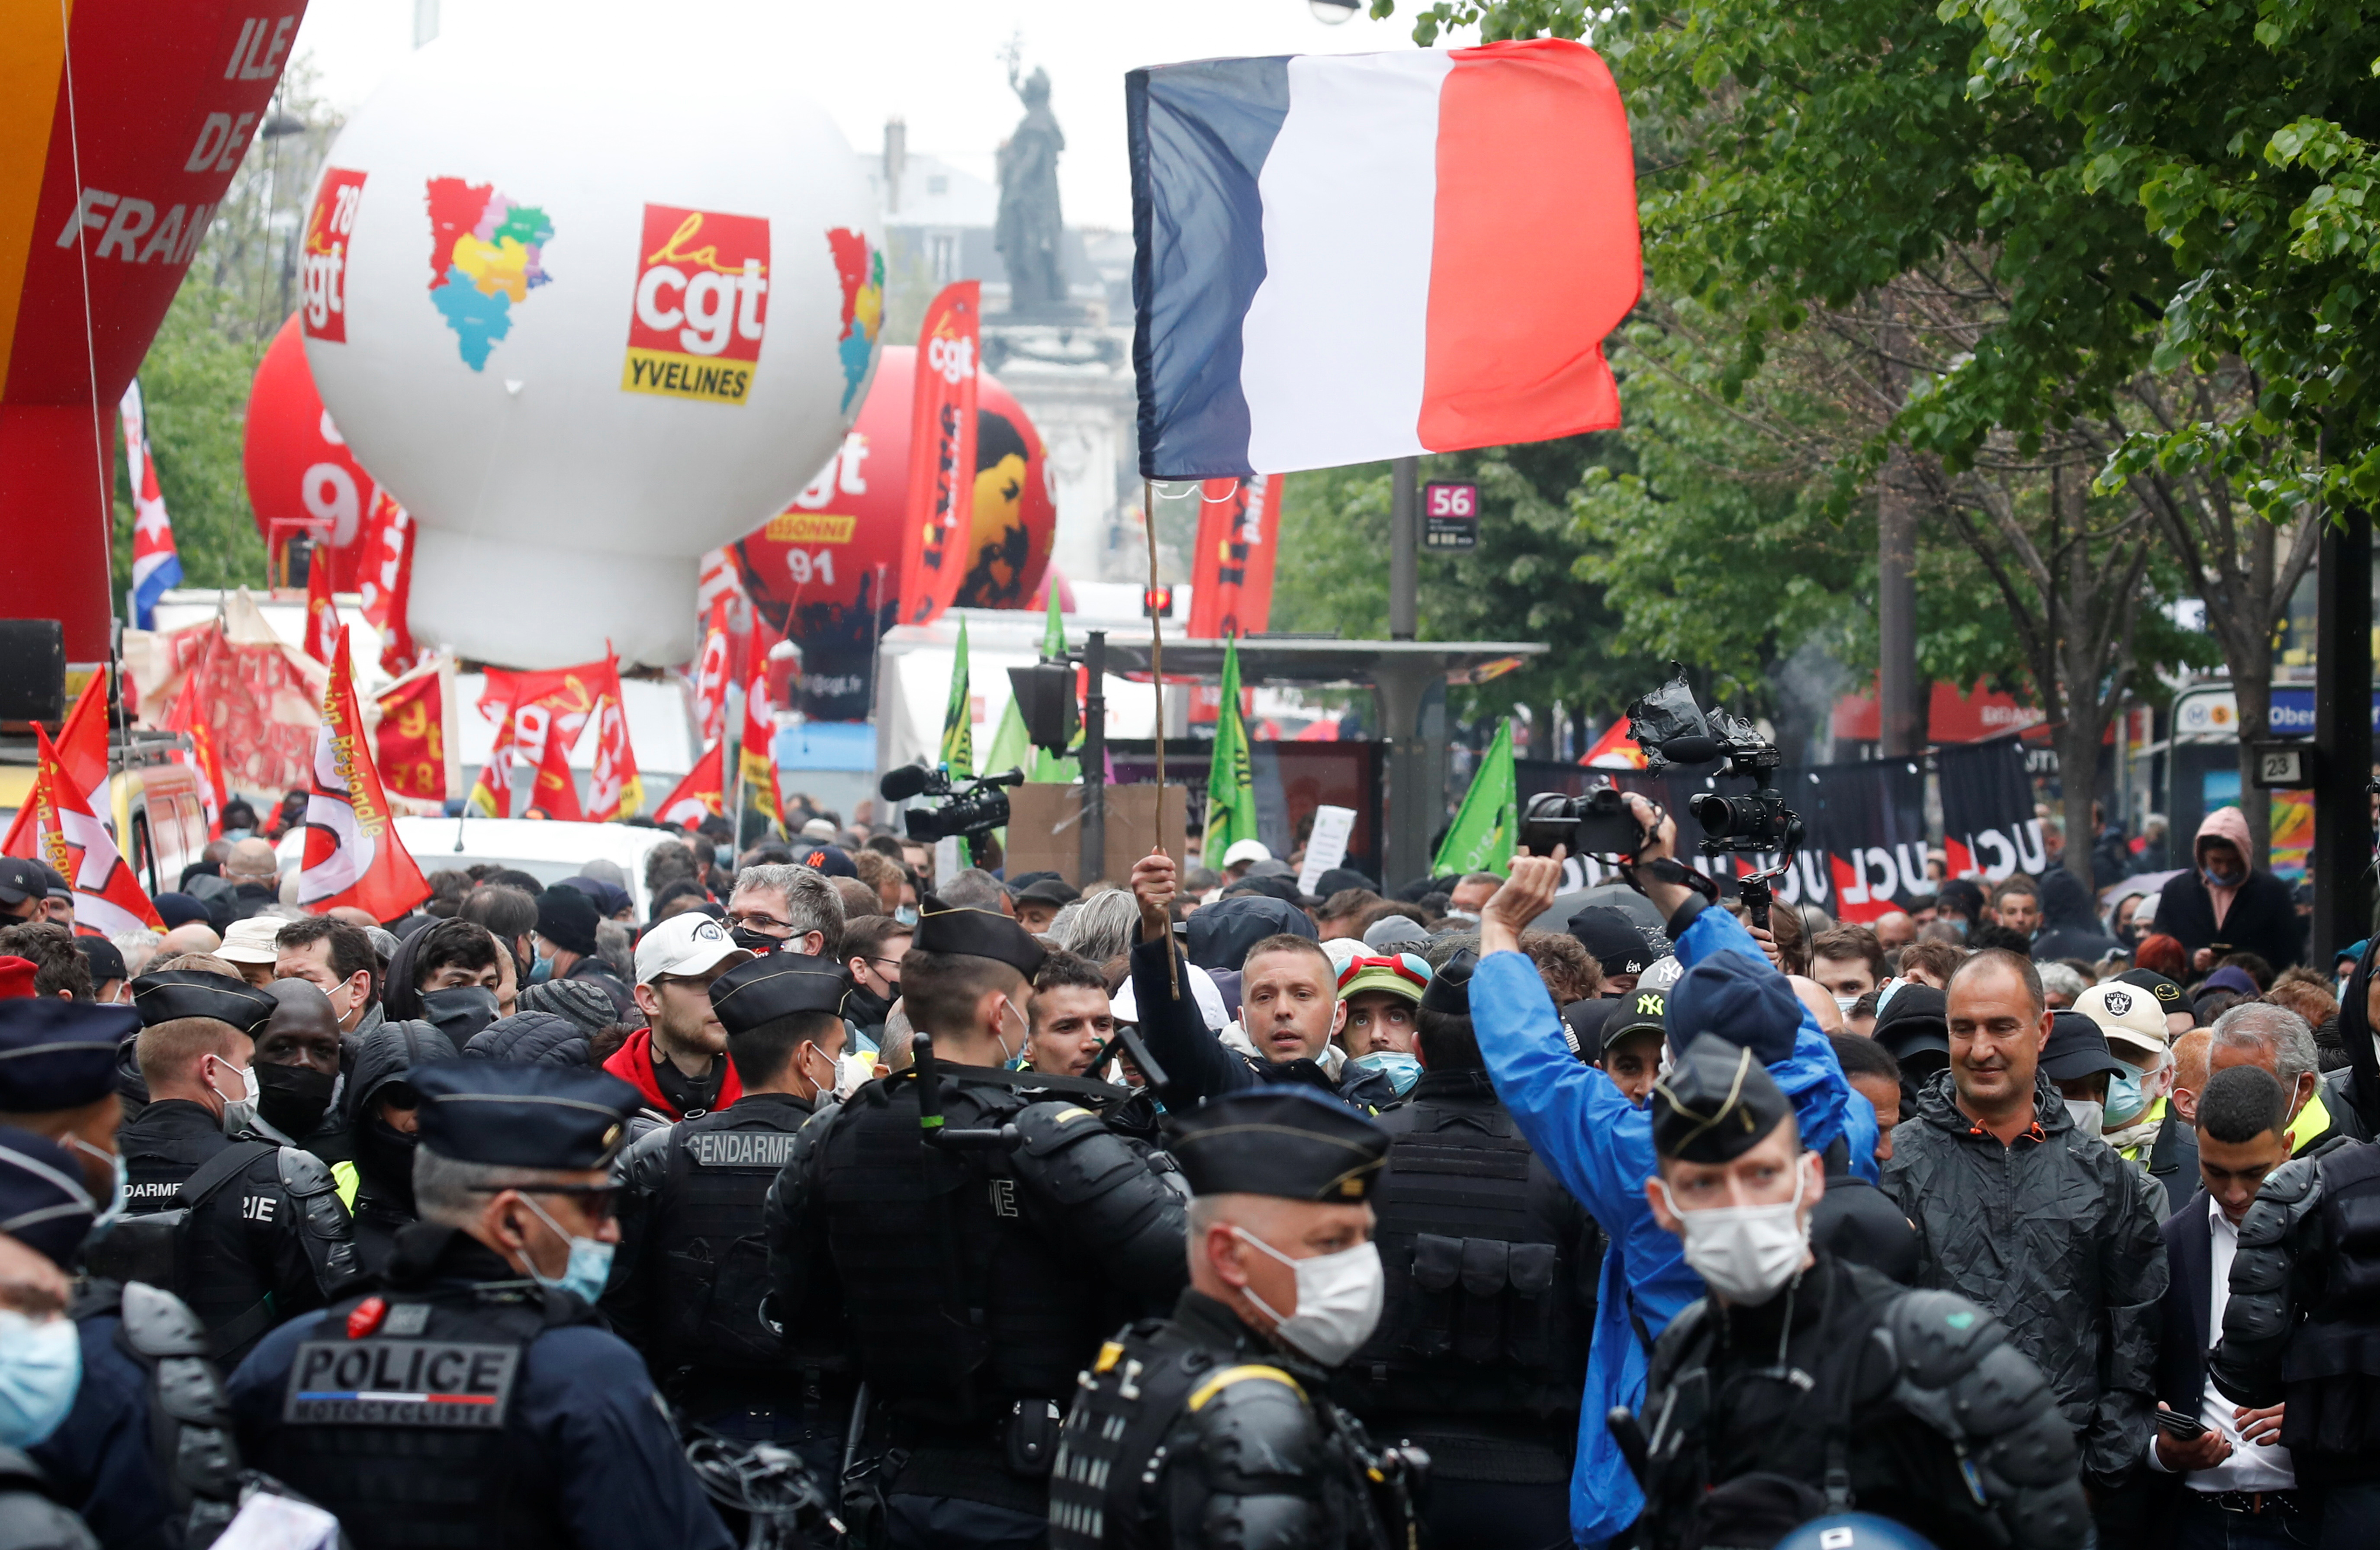 People attend the traditional May Day labour union demonstration, amid the coronavirus disease (COVID-19) outbreak in Paris, France, May 1, 2021. REUTERS/Gonzalo Fuentes